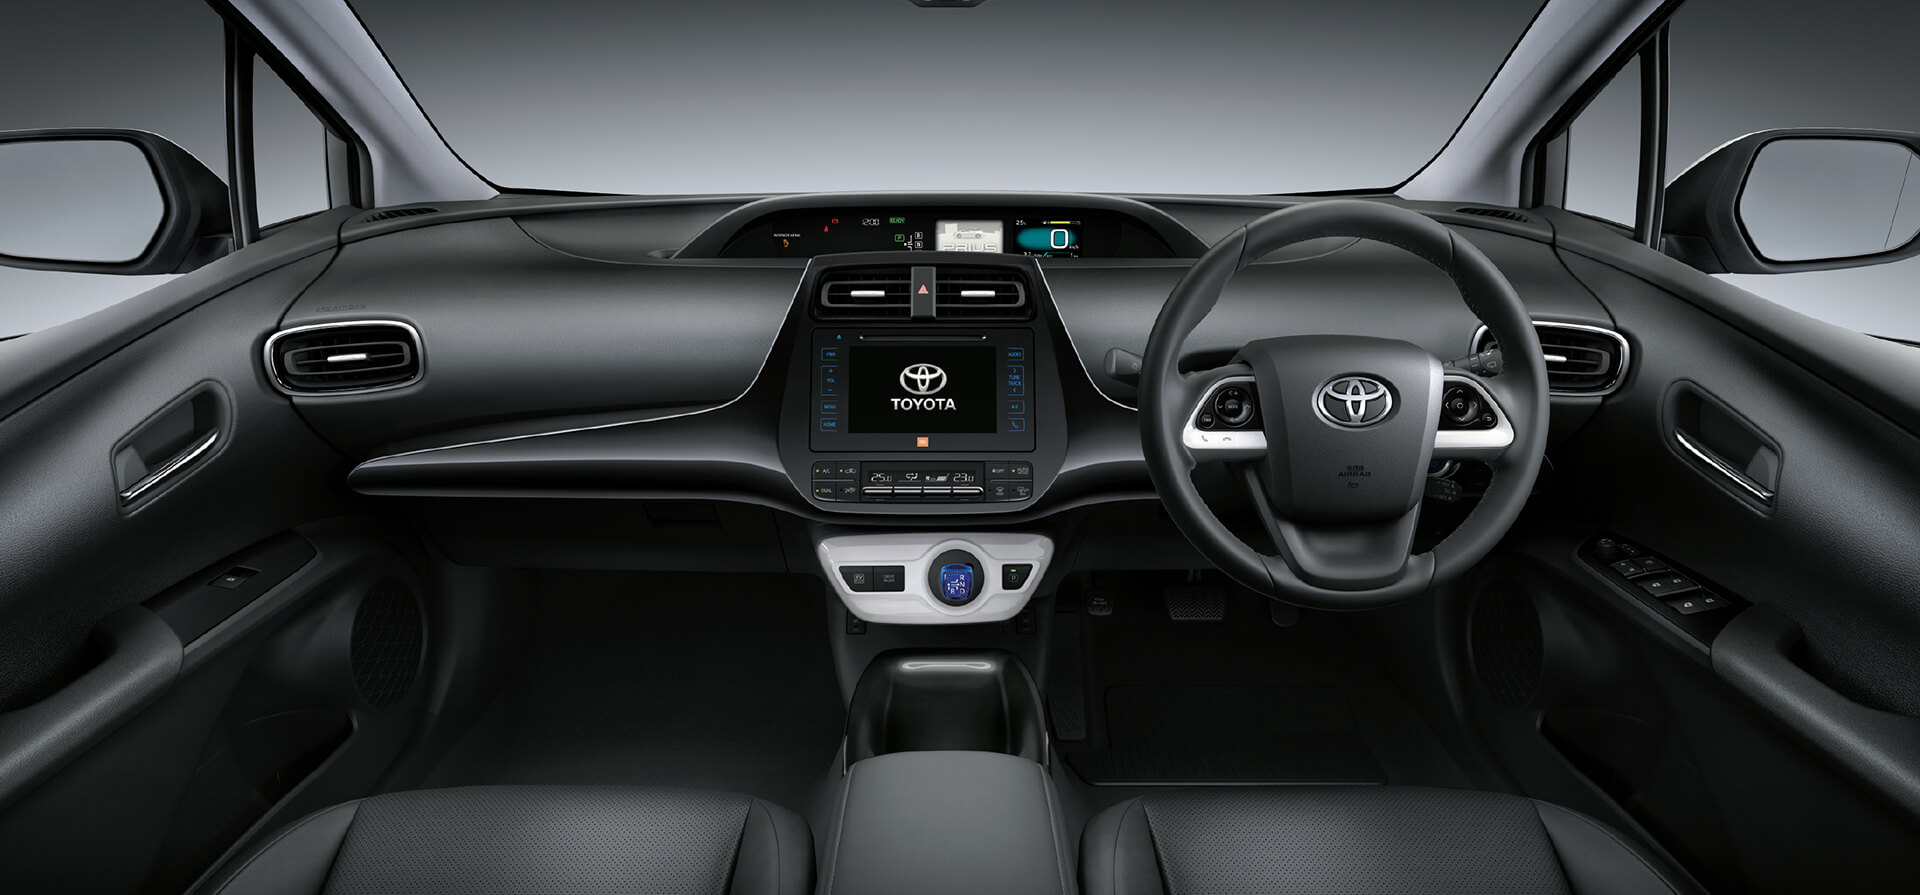 Toyota India Official Prius Site Two Way Switch Price In Dual Power To Maximise A Great Driving Experience